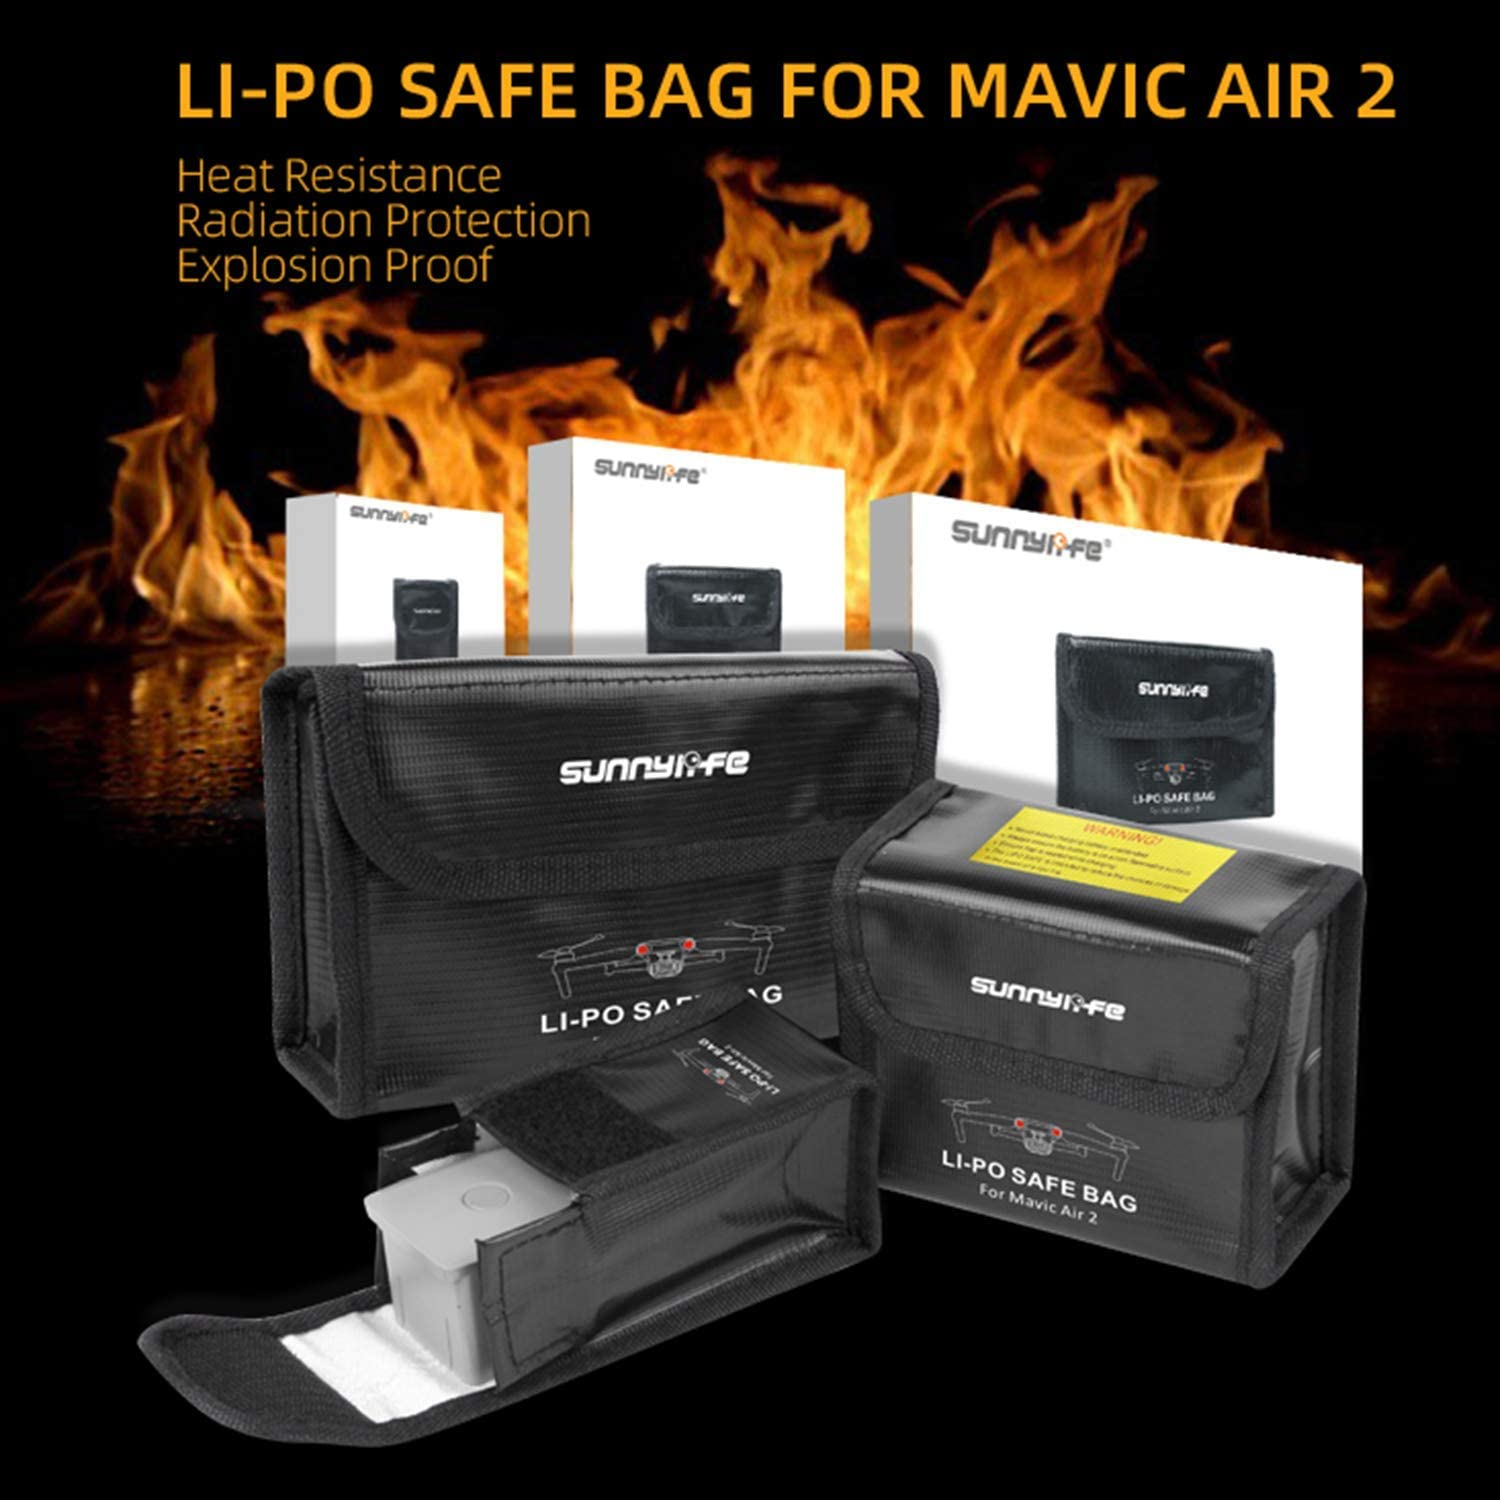 Hensych LiPo Safe Bag Heat Resistance Explosion Proof Radiation Protection Case for Mavic Air 2,Safe Storage Bag Fireproof Protective Box for 1pcs battery